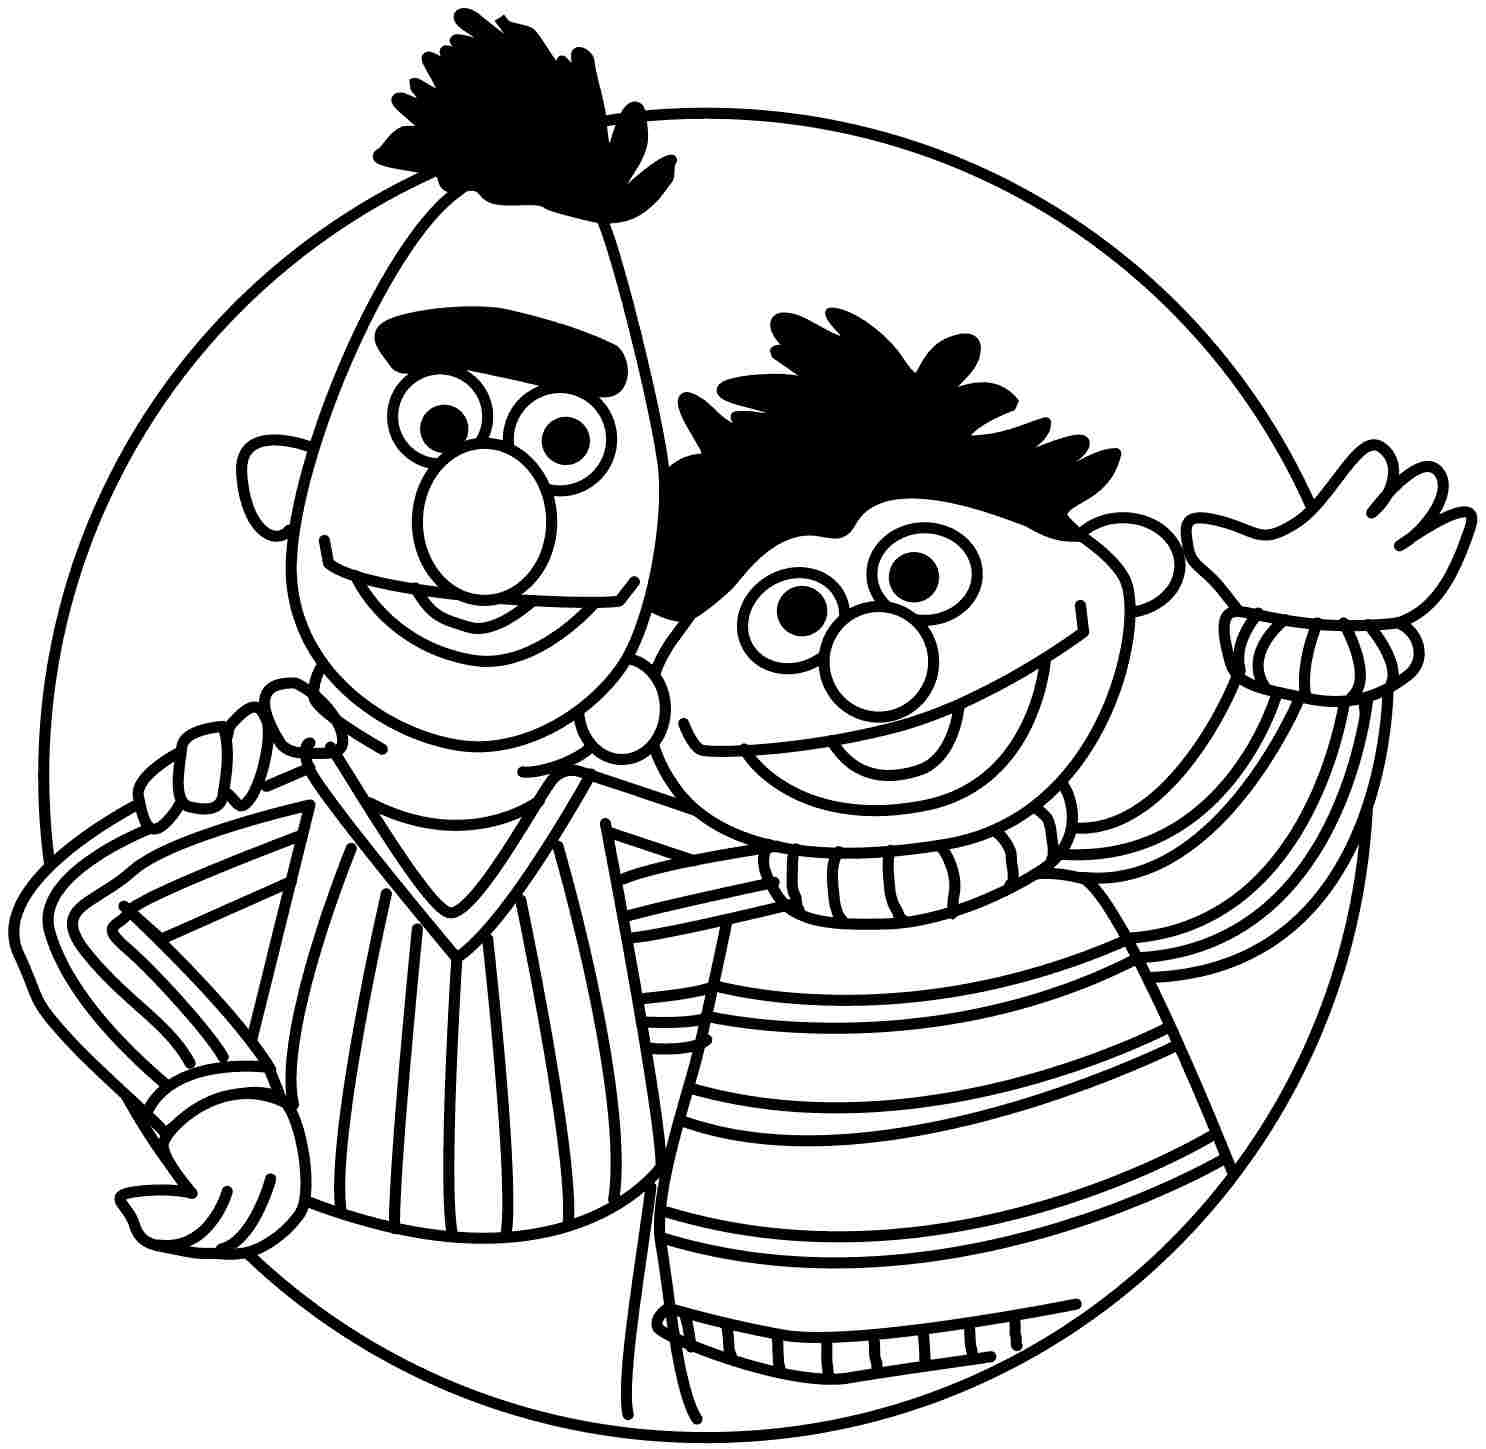 bert ernie coloring pages - photo#15